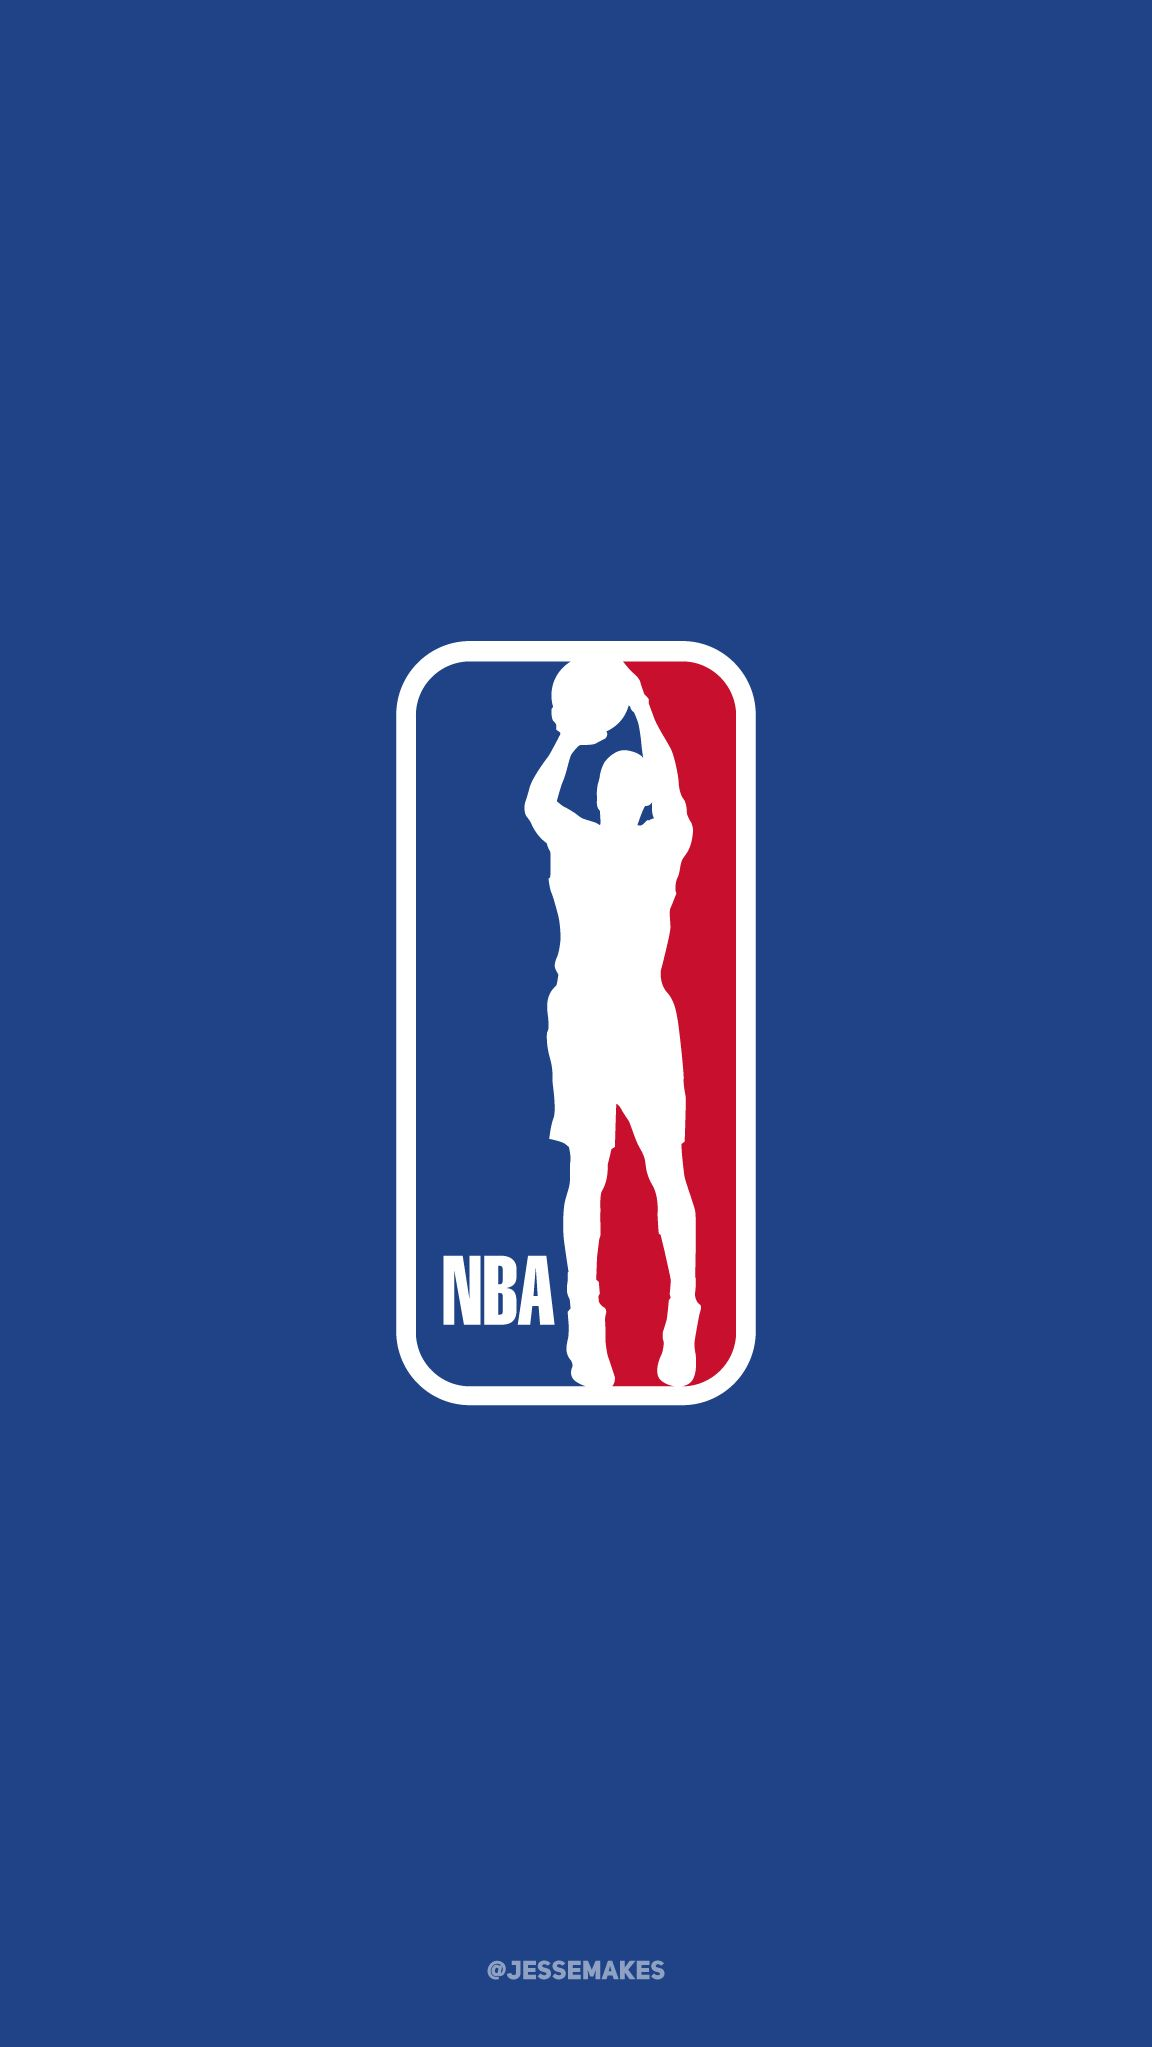 Stephen Curry As The Subject Of The Nba Logo Part Of My Nba Logo